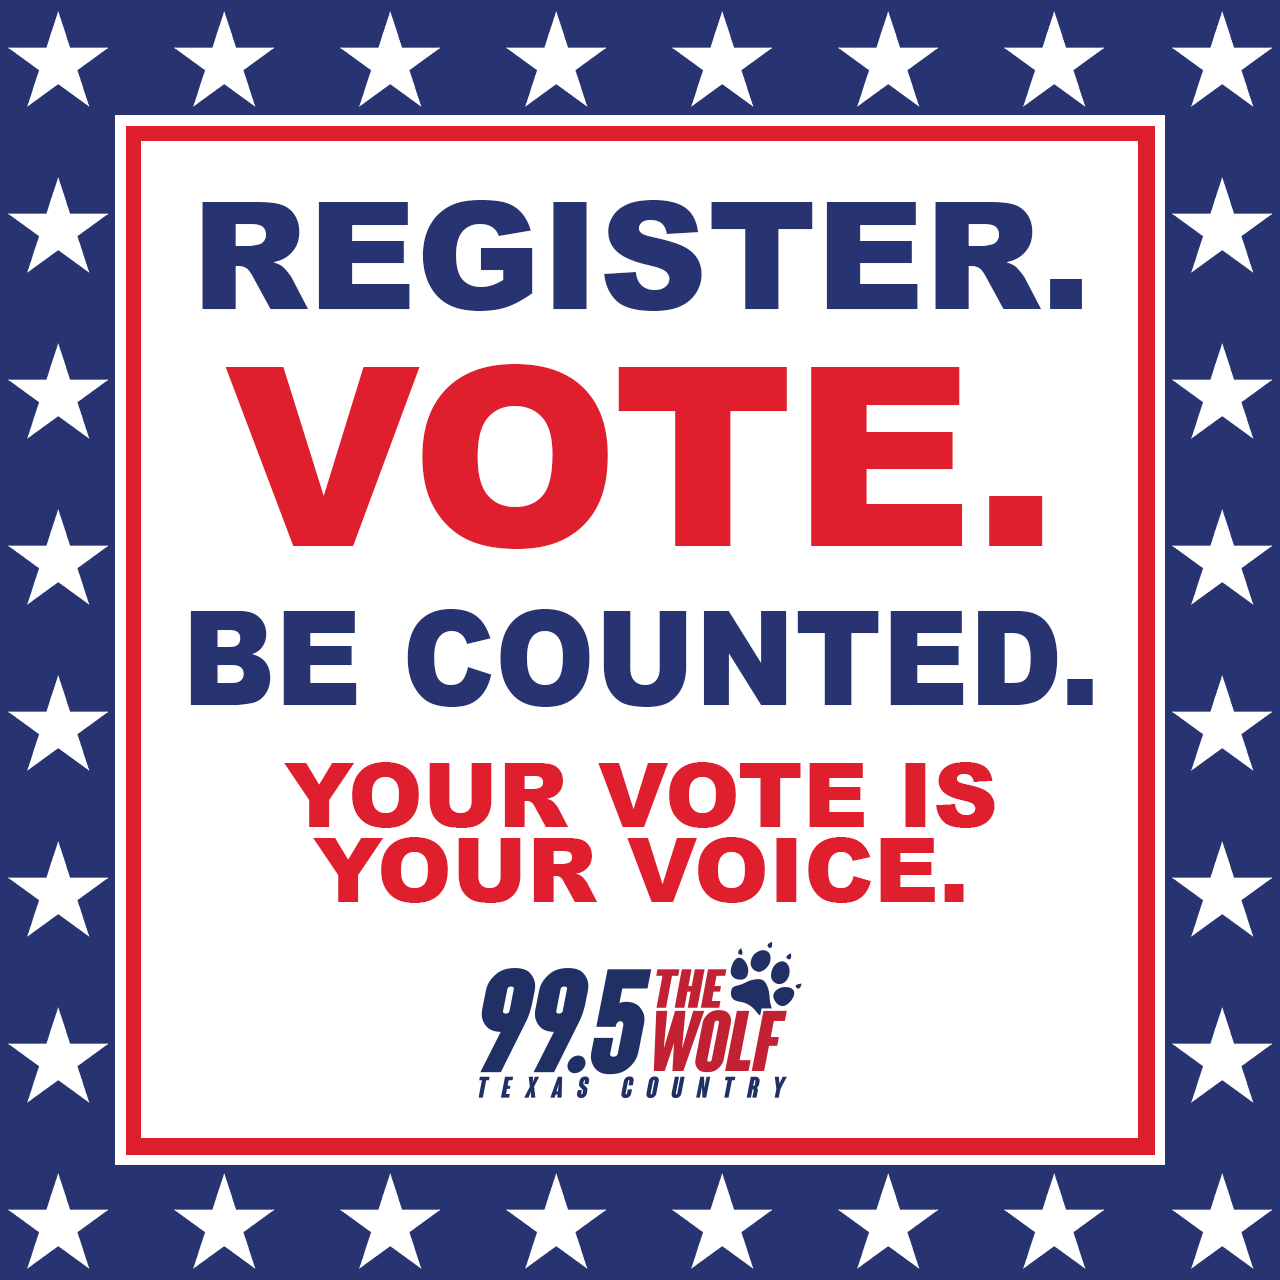 Make your vote count and get registed to vote in Texas!